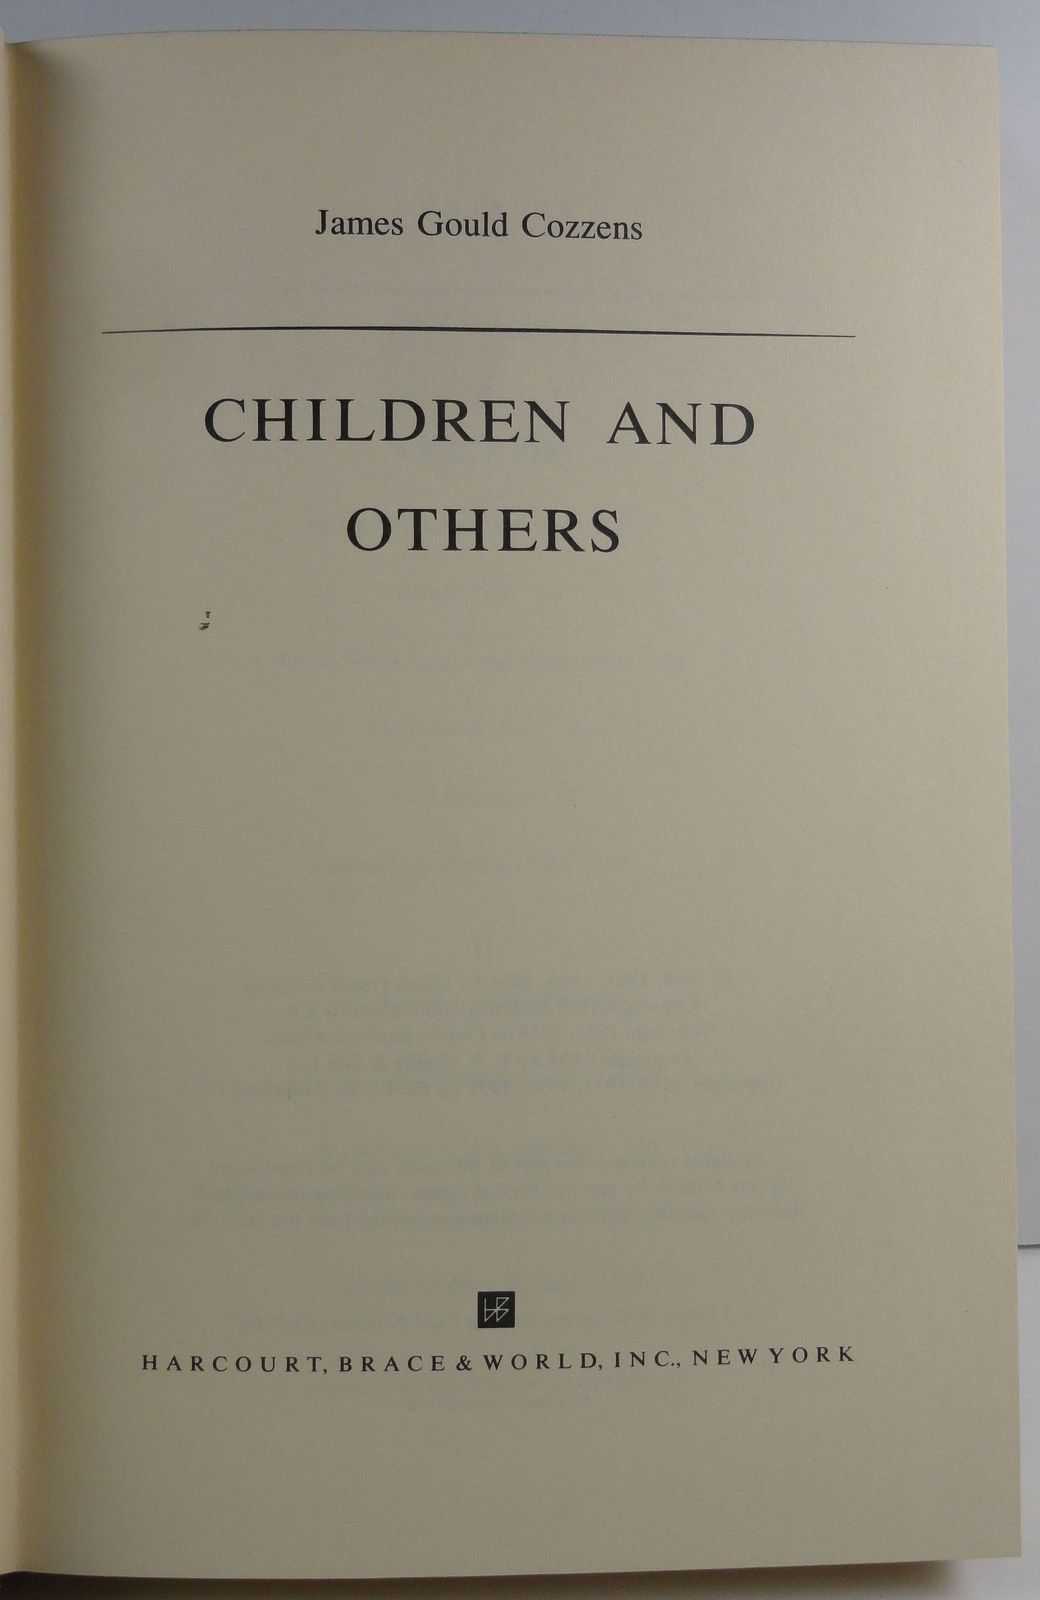 Children and Others by James Gould Cozzens 1964 HC/DJ